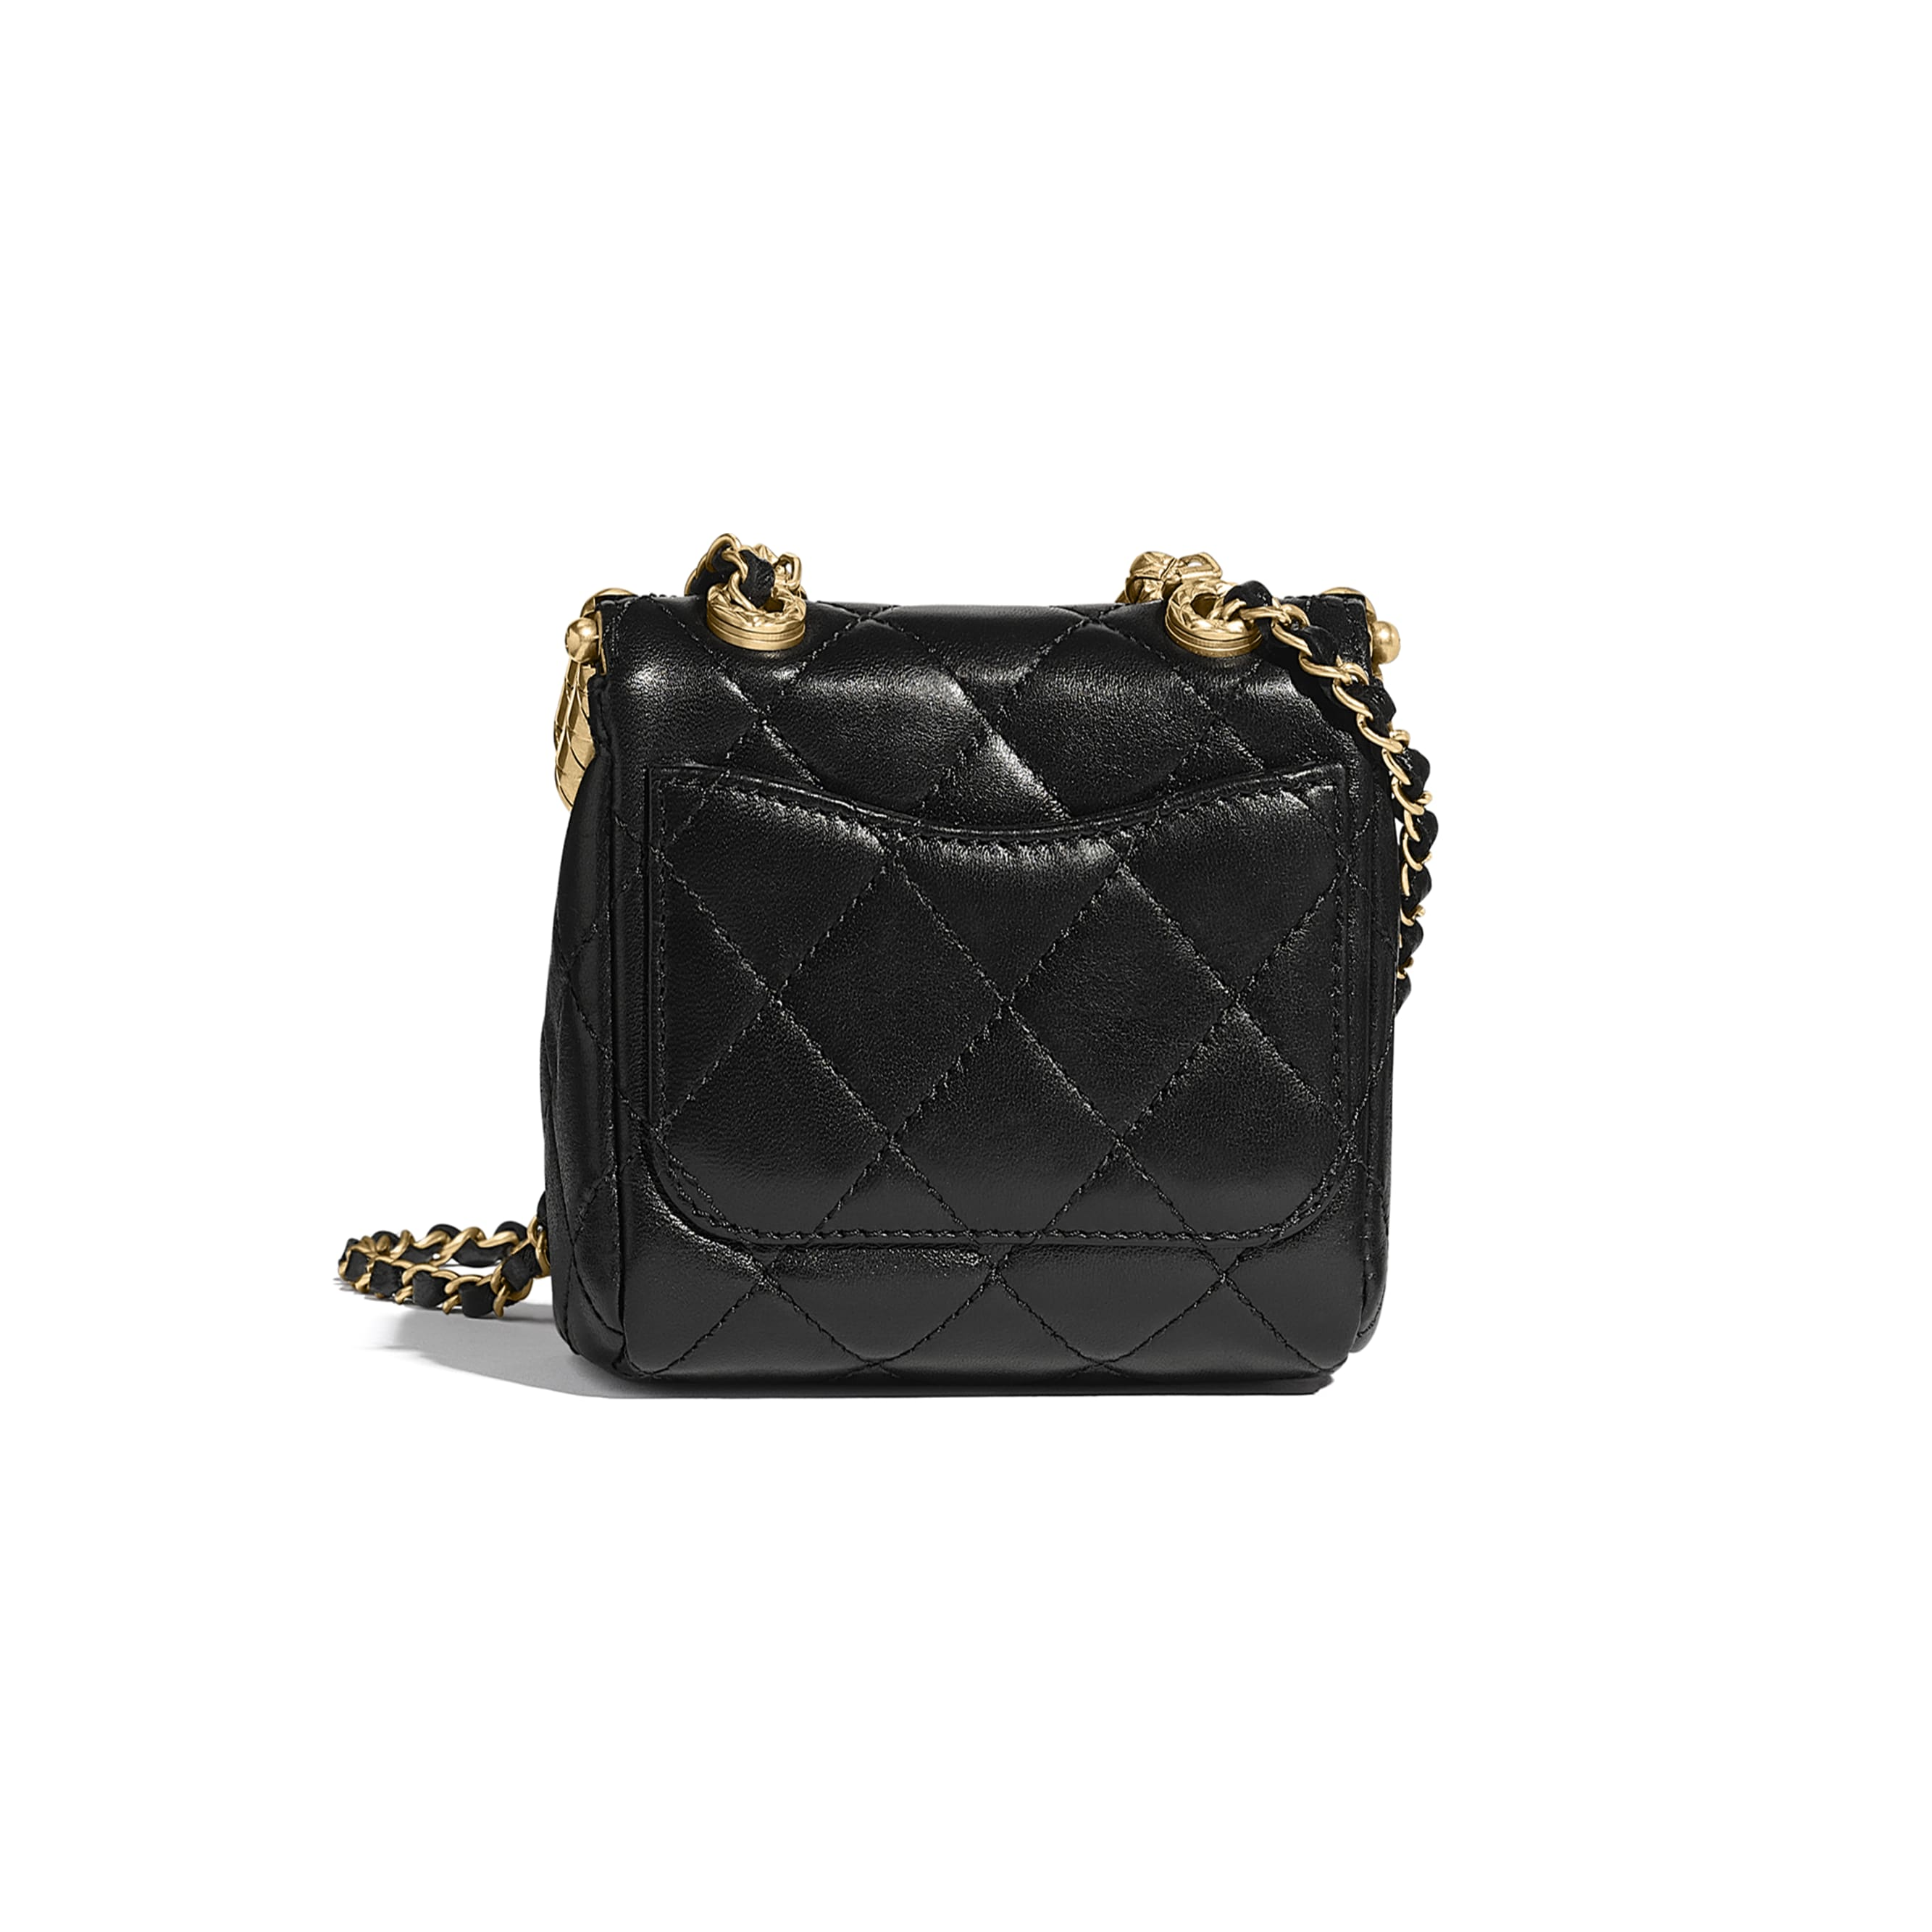 Small Kiss-Lock Bag - Black - Lambskin - CHANEL - Alternative view - see standard sized version